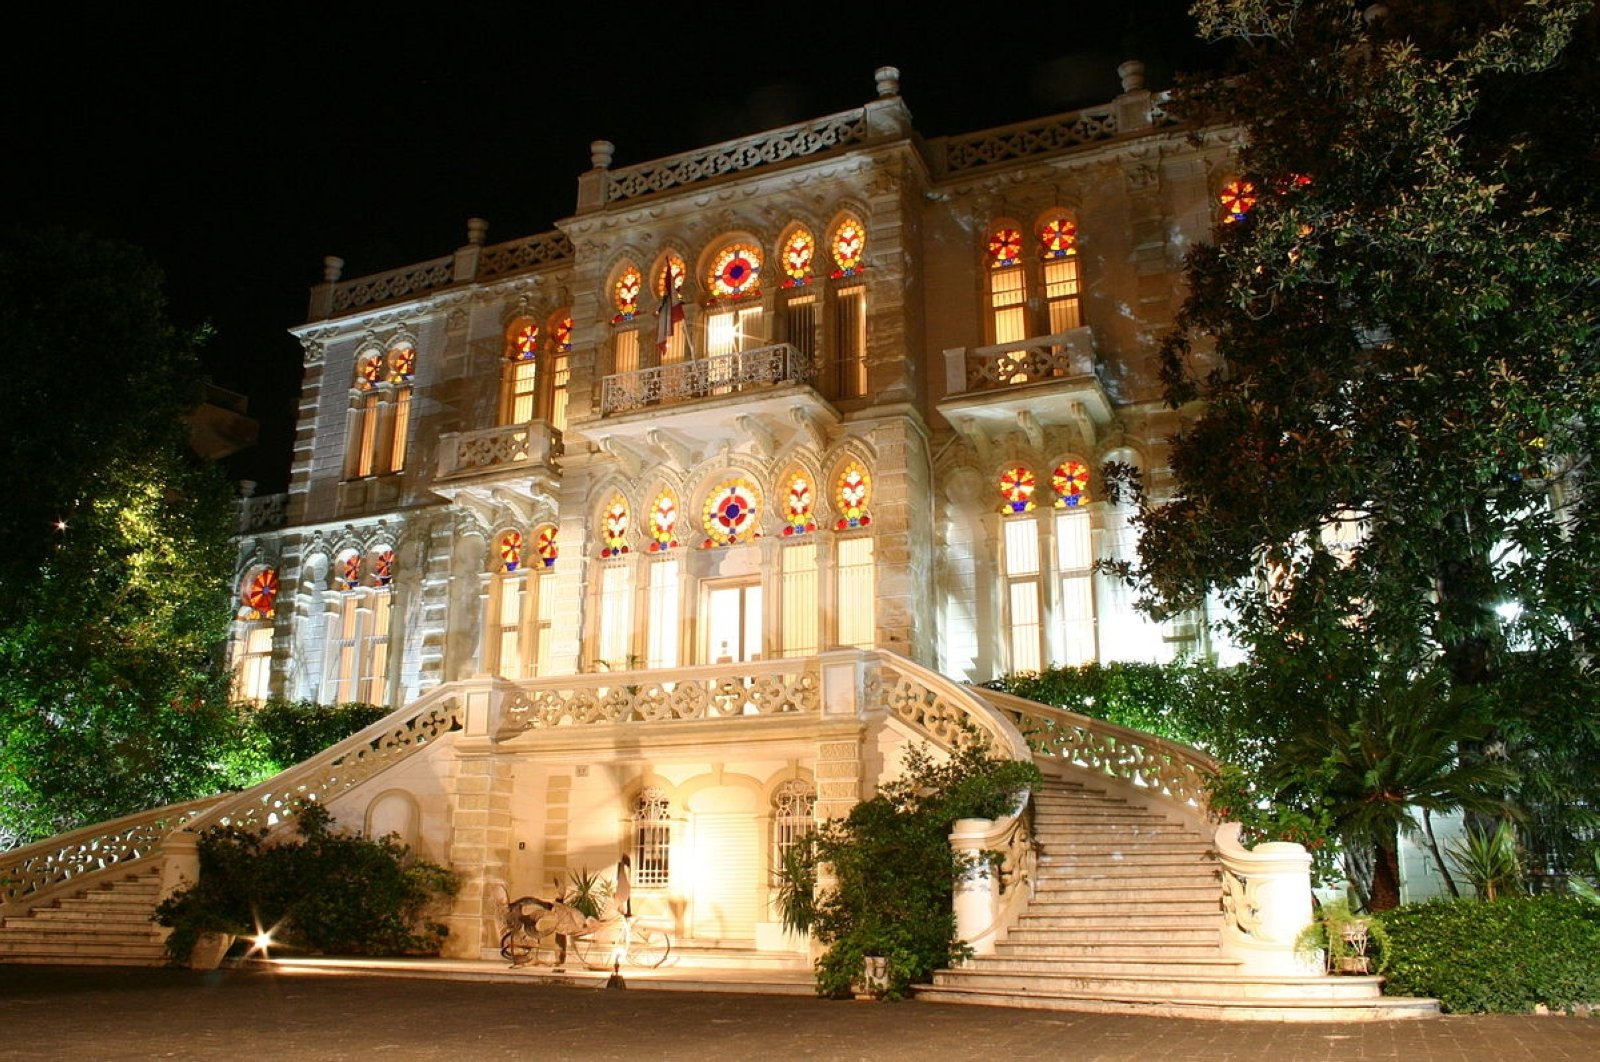 Sursock Museum is located a few kilometers from the explosion site.